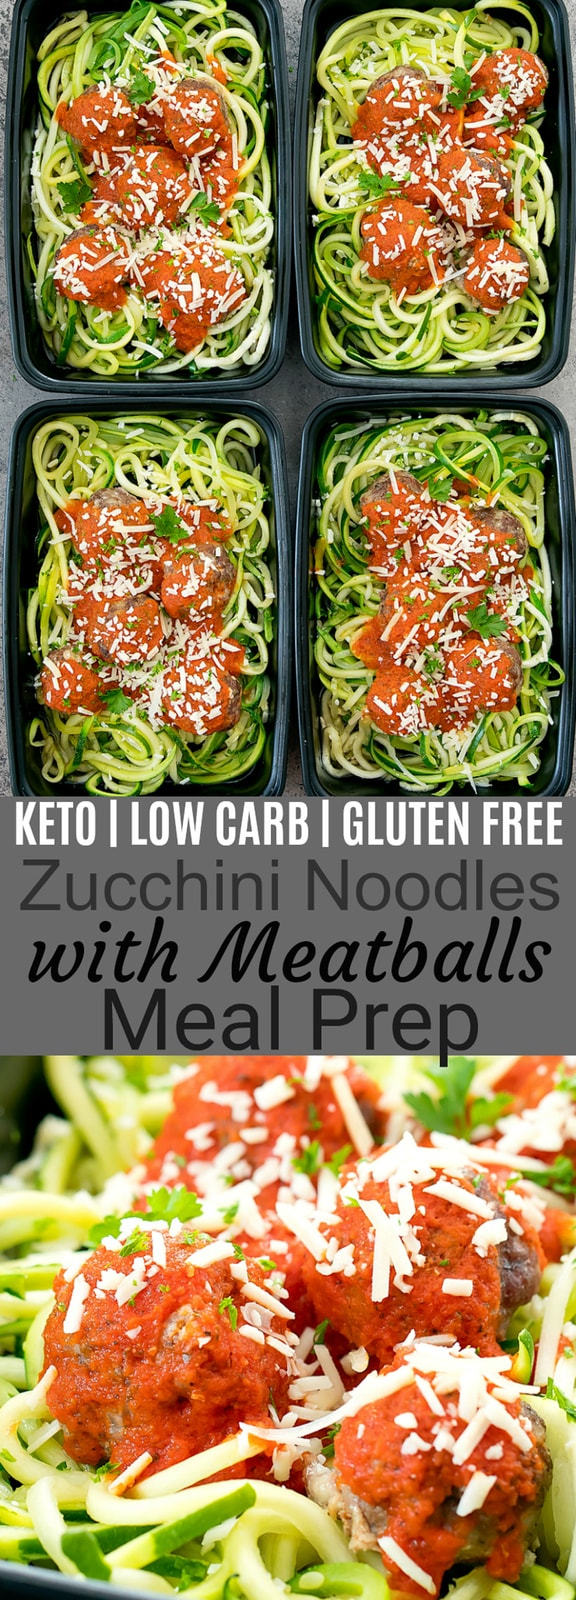 Zucchini Noodles with Meatballs Meal Prep. Low carb, keto friendly, gluten free and easy to make!